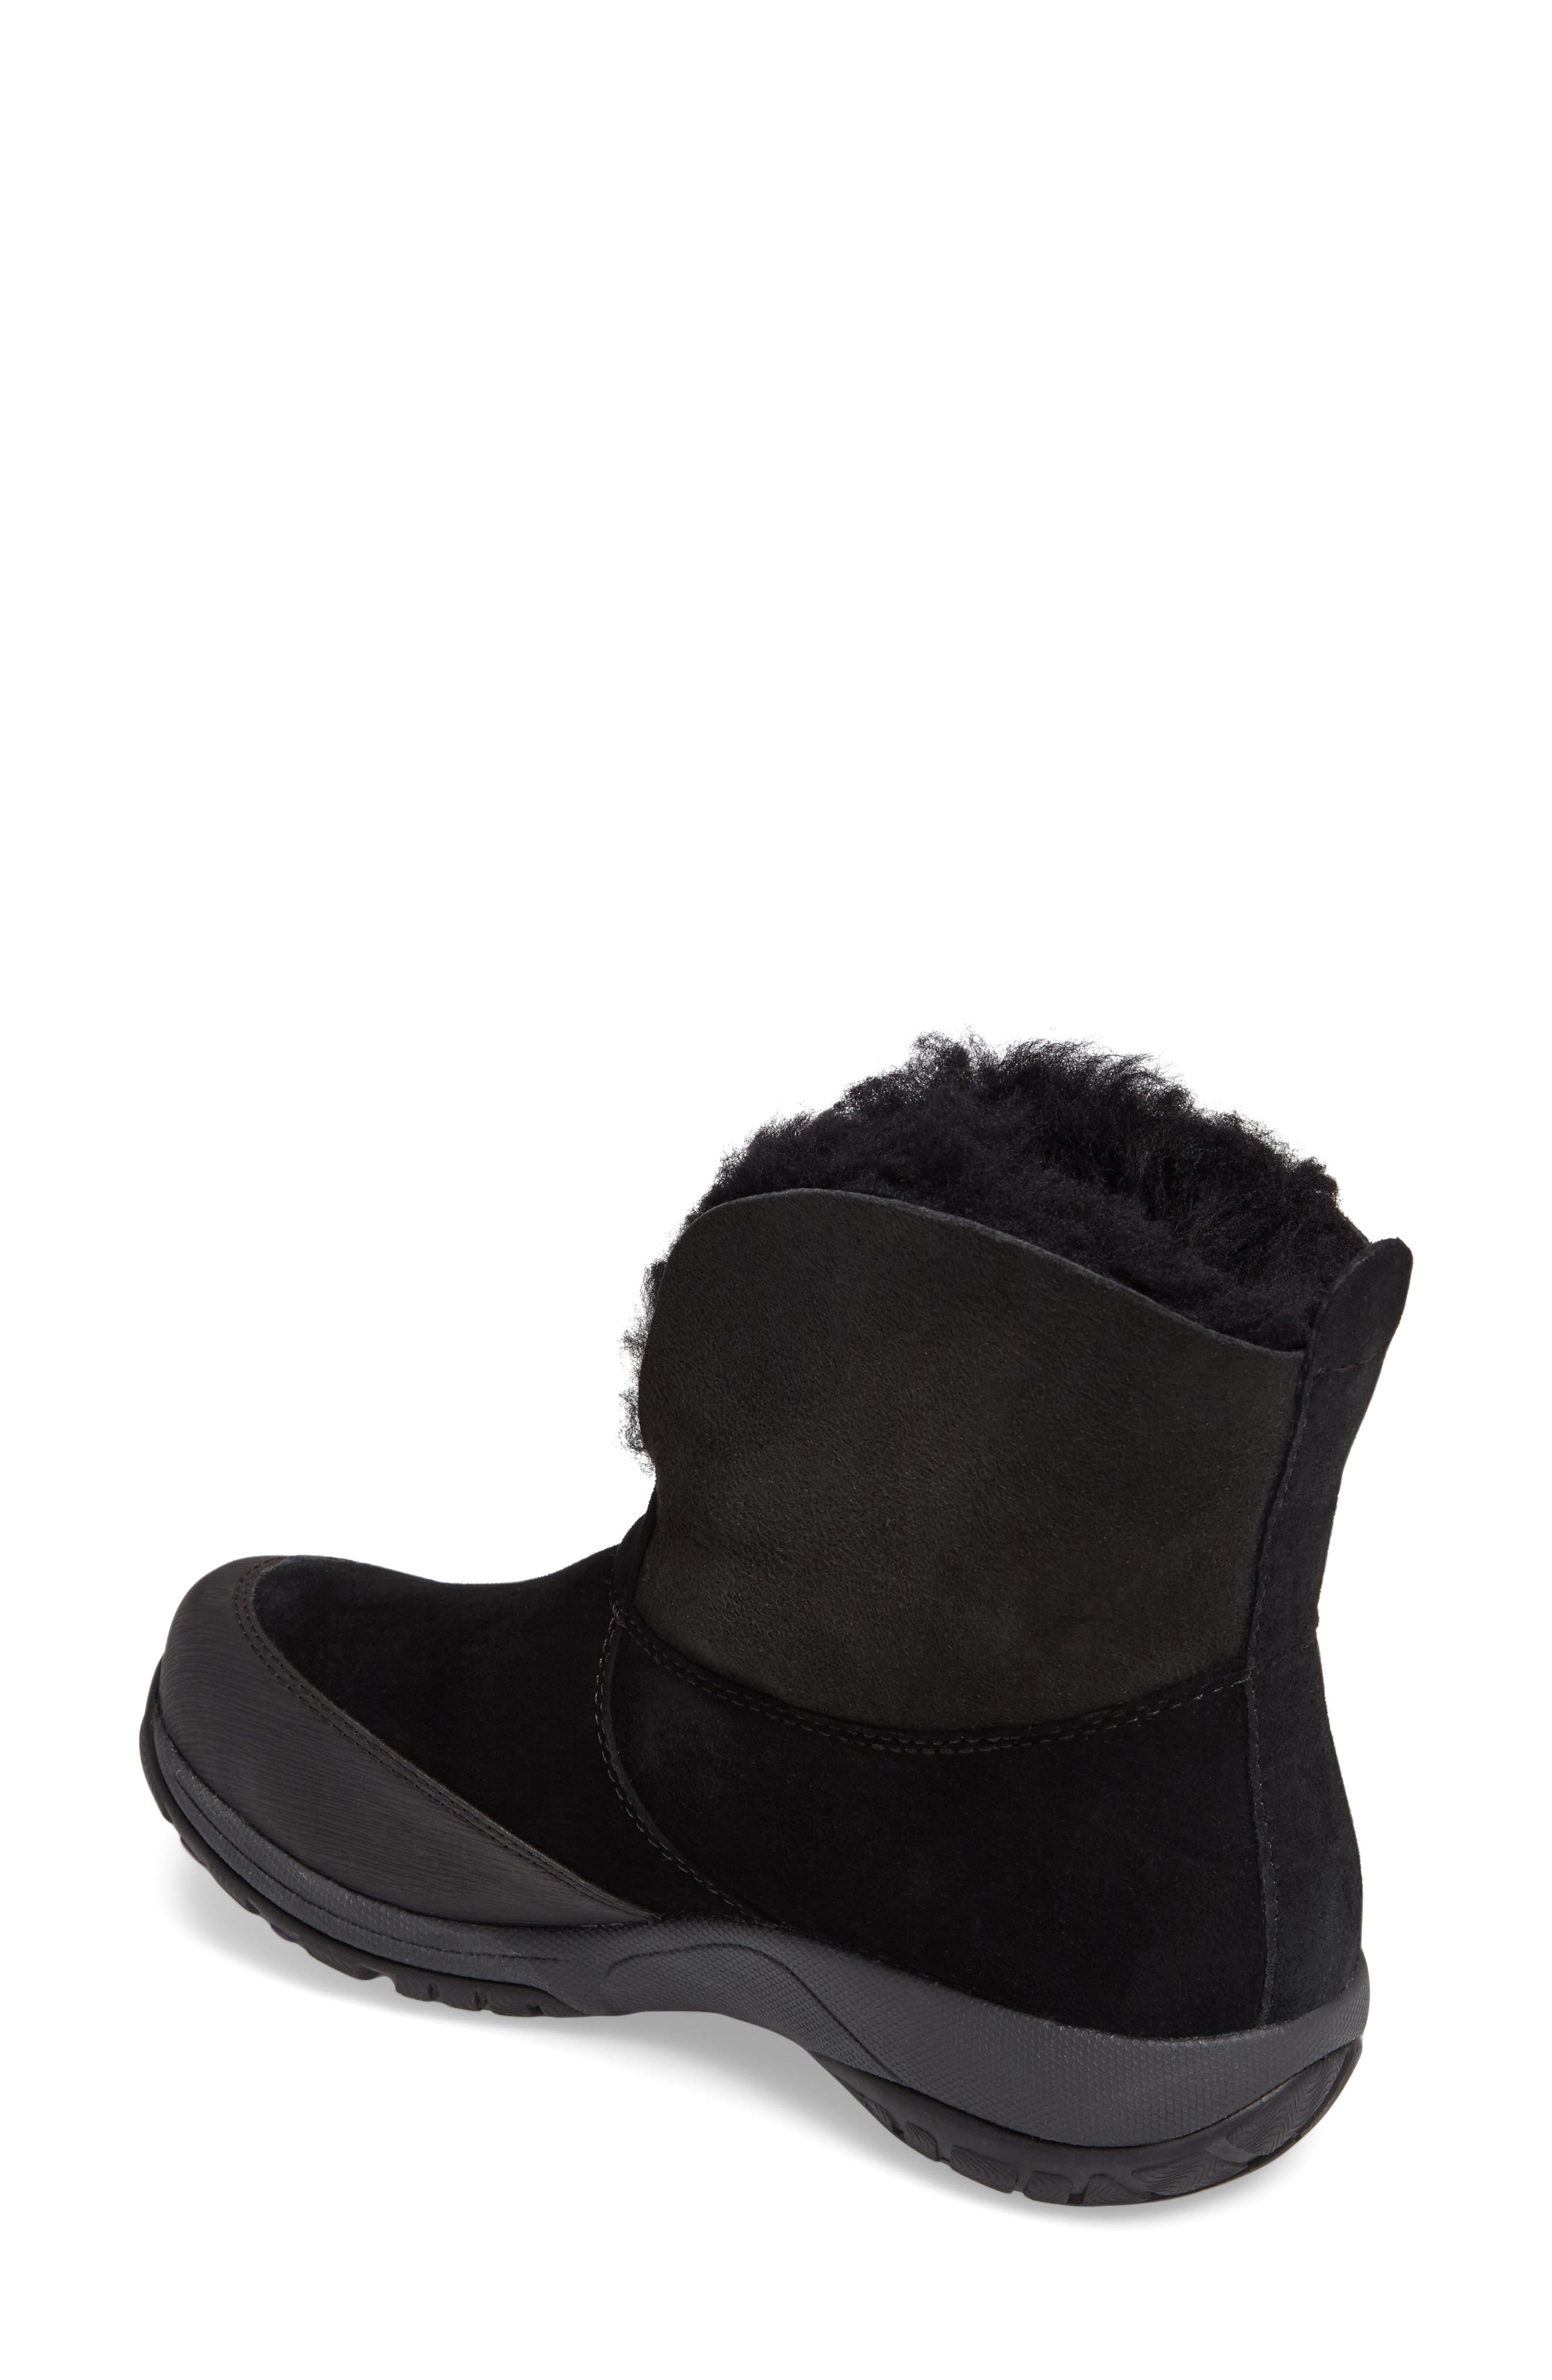 Priscilla Genuine Shearling Waterproof Bootie,                             Alternate thumbnail 3, color,                             001